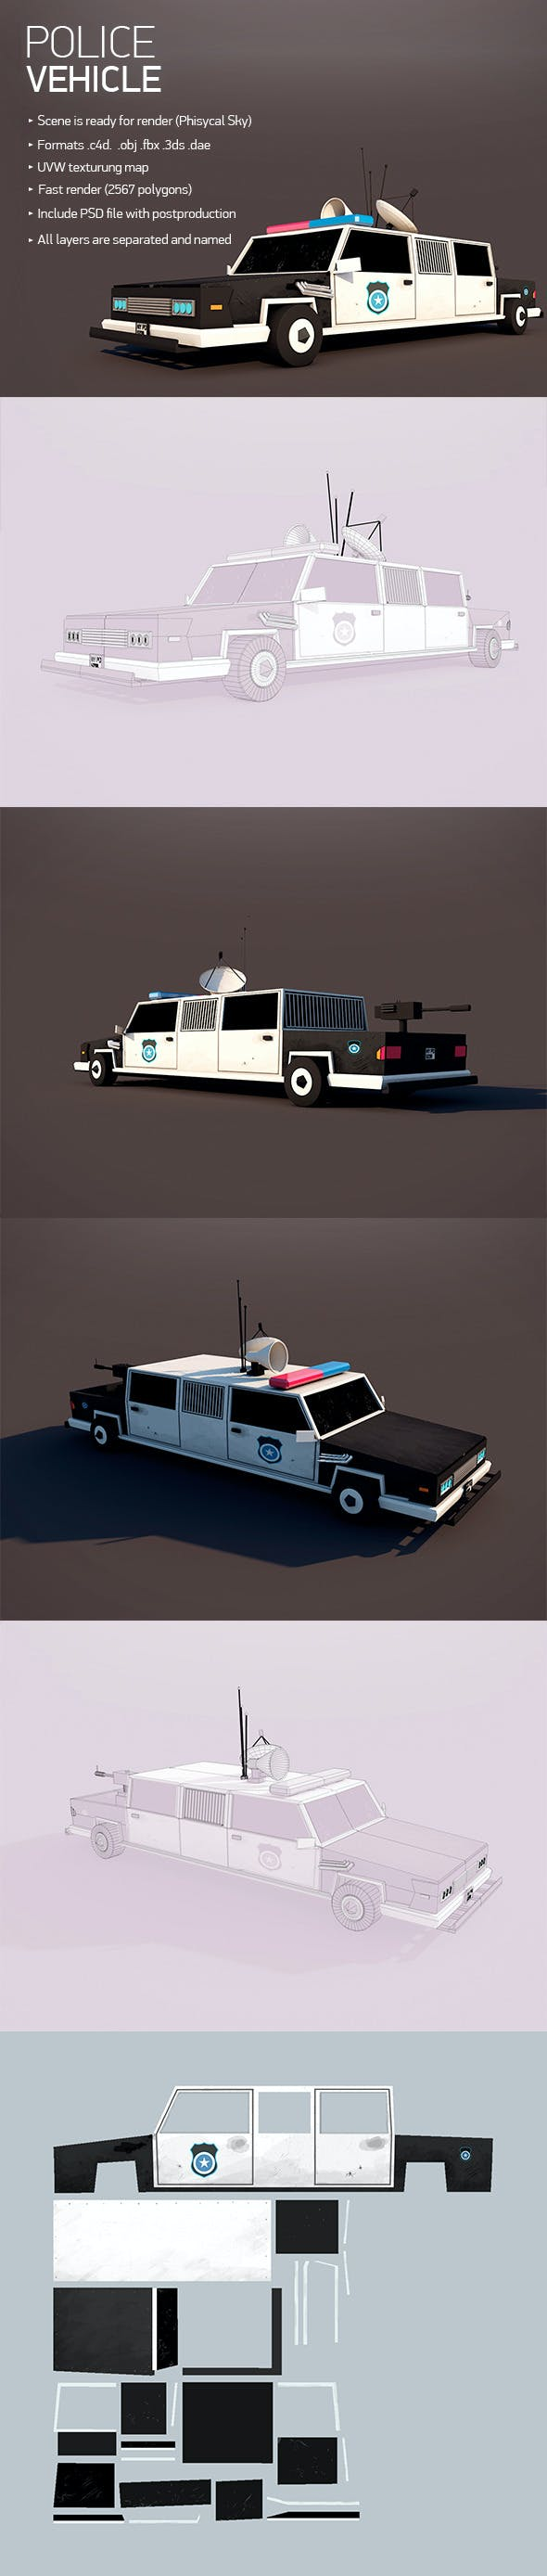 Police Vehicle - 3DOcean Item for Sale